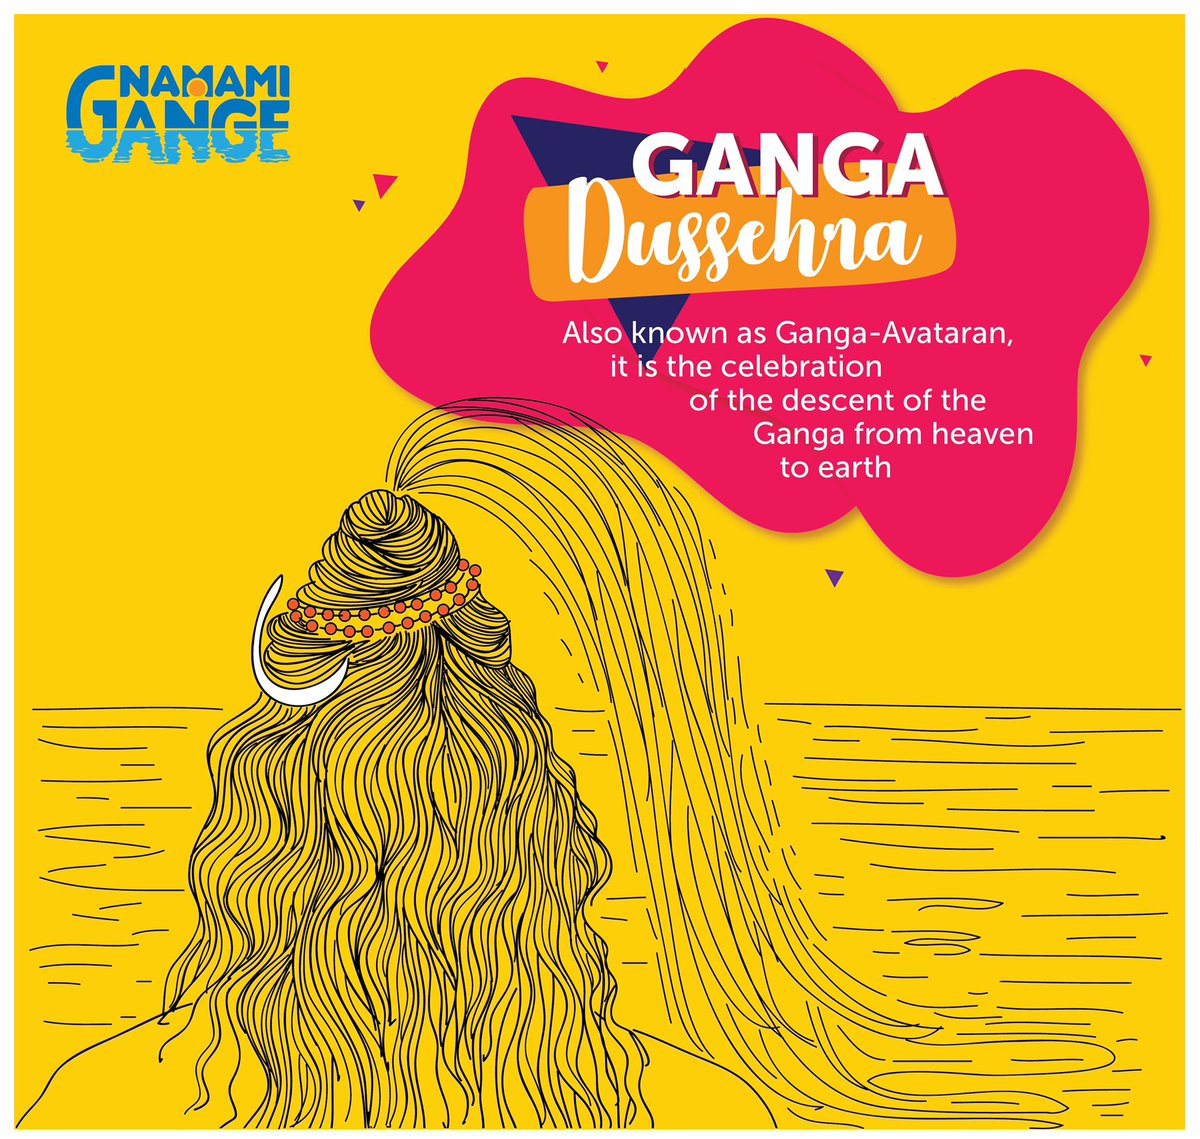 Ganga Dussehra also known as Ganga-Avataran, it is the celebration of the descent of the Ganga from heaven to earth.  #GangaDussehra #NamamiGange